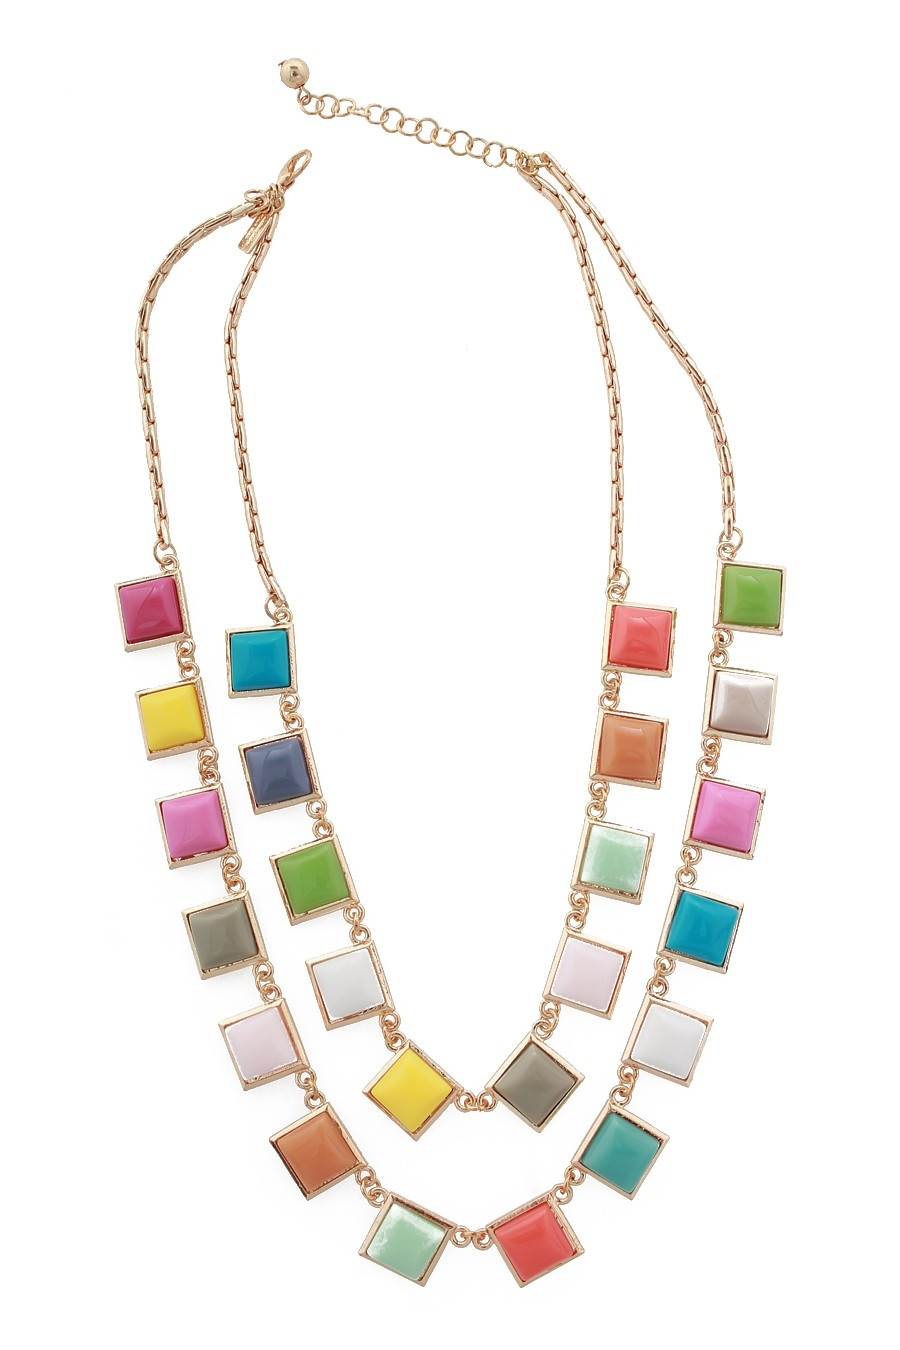 m 2013 Top Jewelry Trends